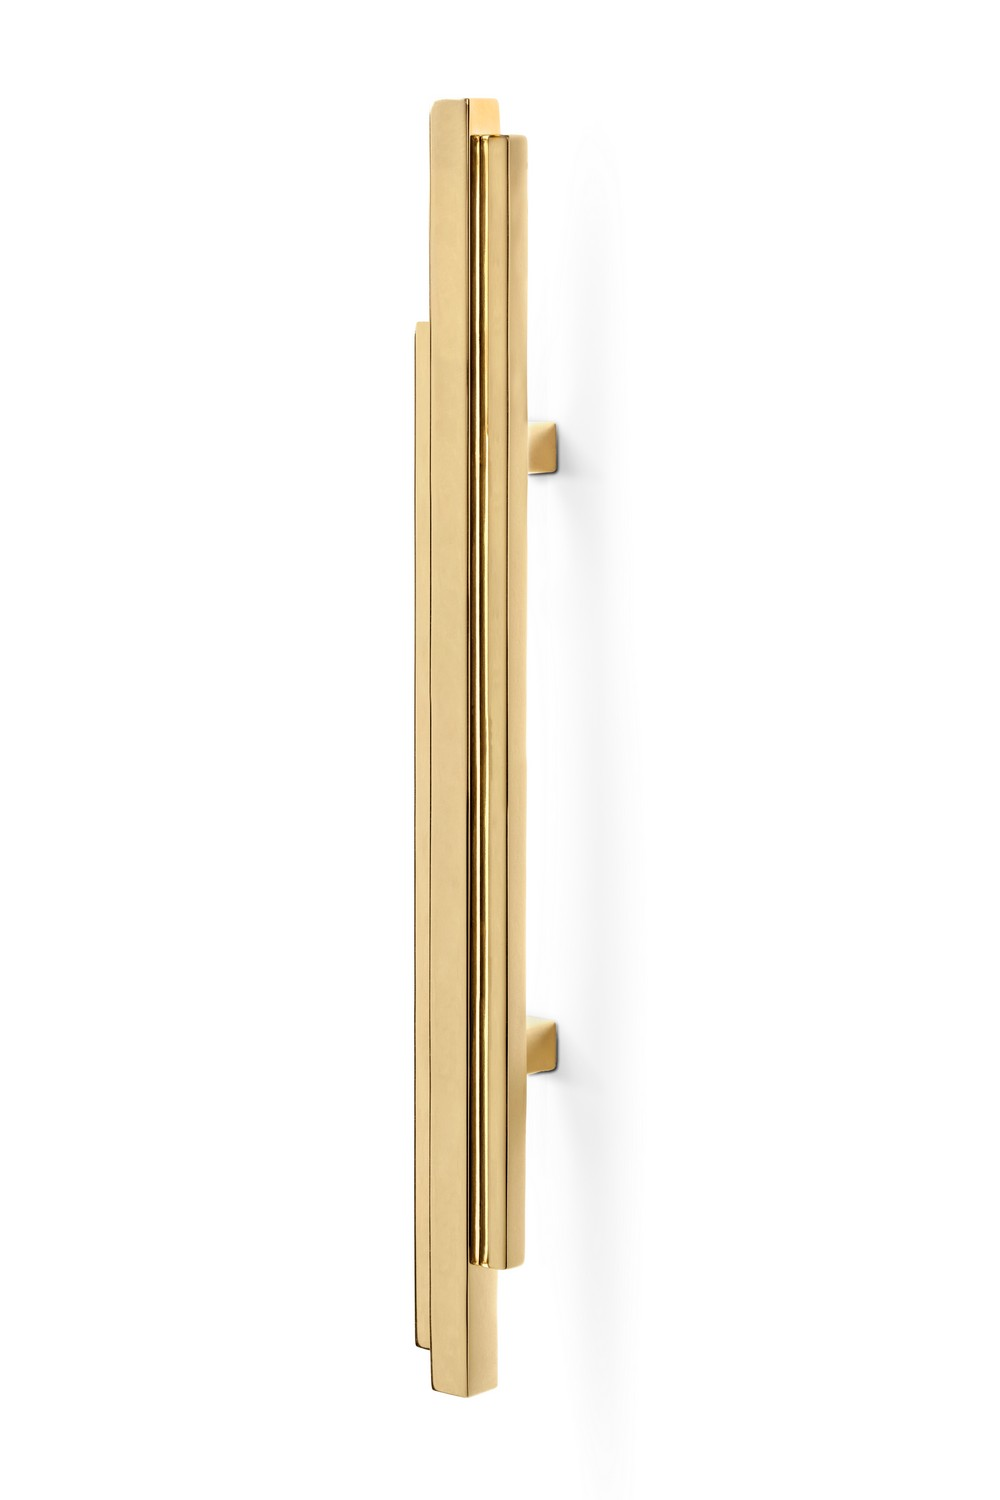 Be Marveled by Hardware Inspirations for Closet and Dressing Rooms 1 hardware inspirations Be Marveled by Hardware Inspirations for Closet and Dressing Rooms Be Marveled by Hardware Inspirations for Closet and Dressing Rooms 1